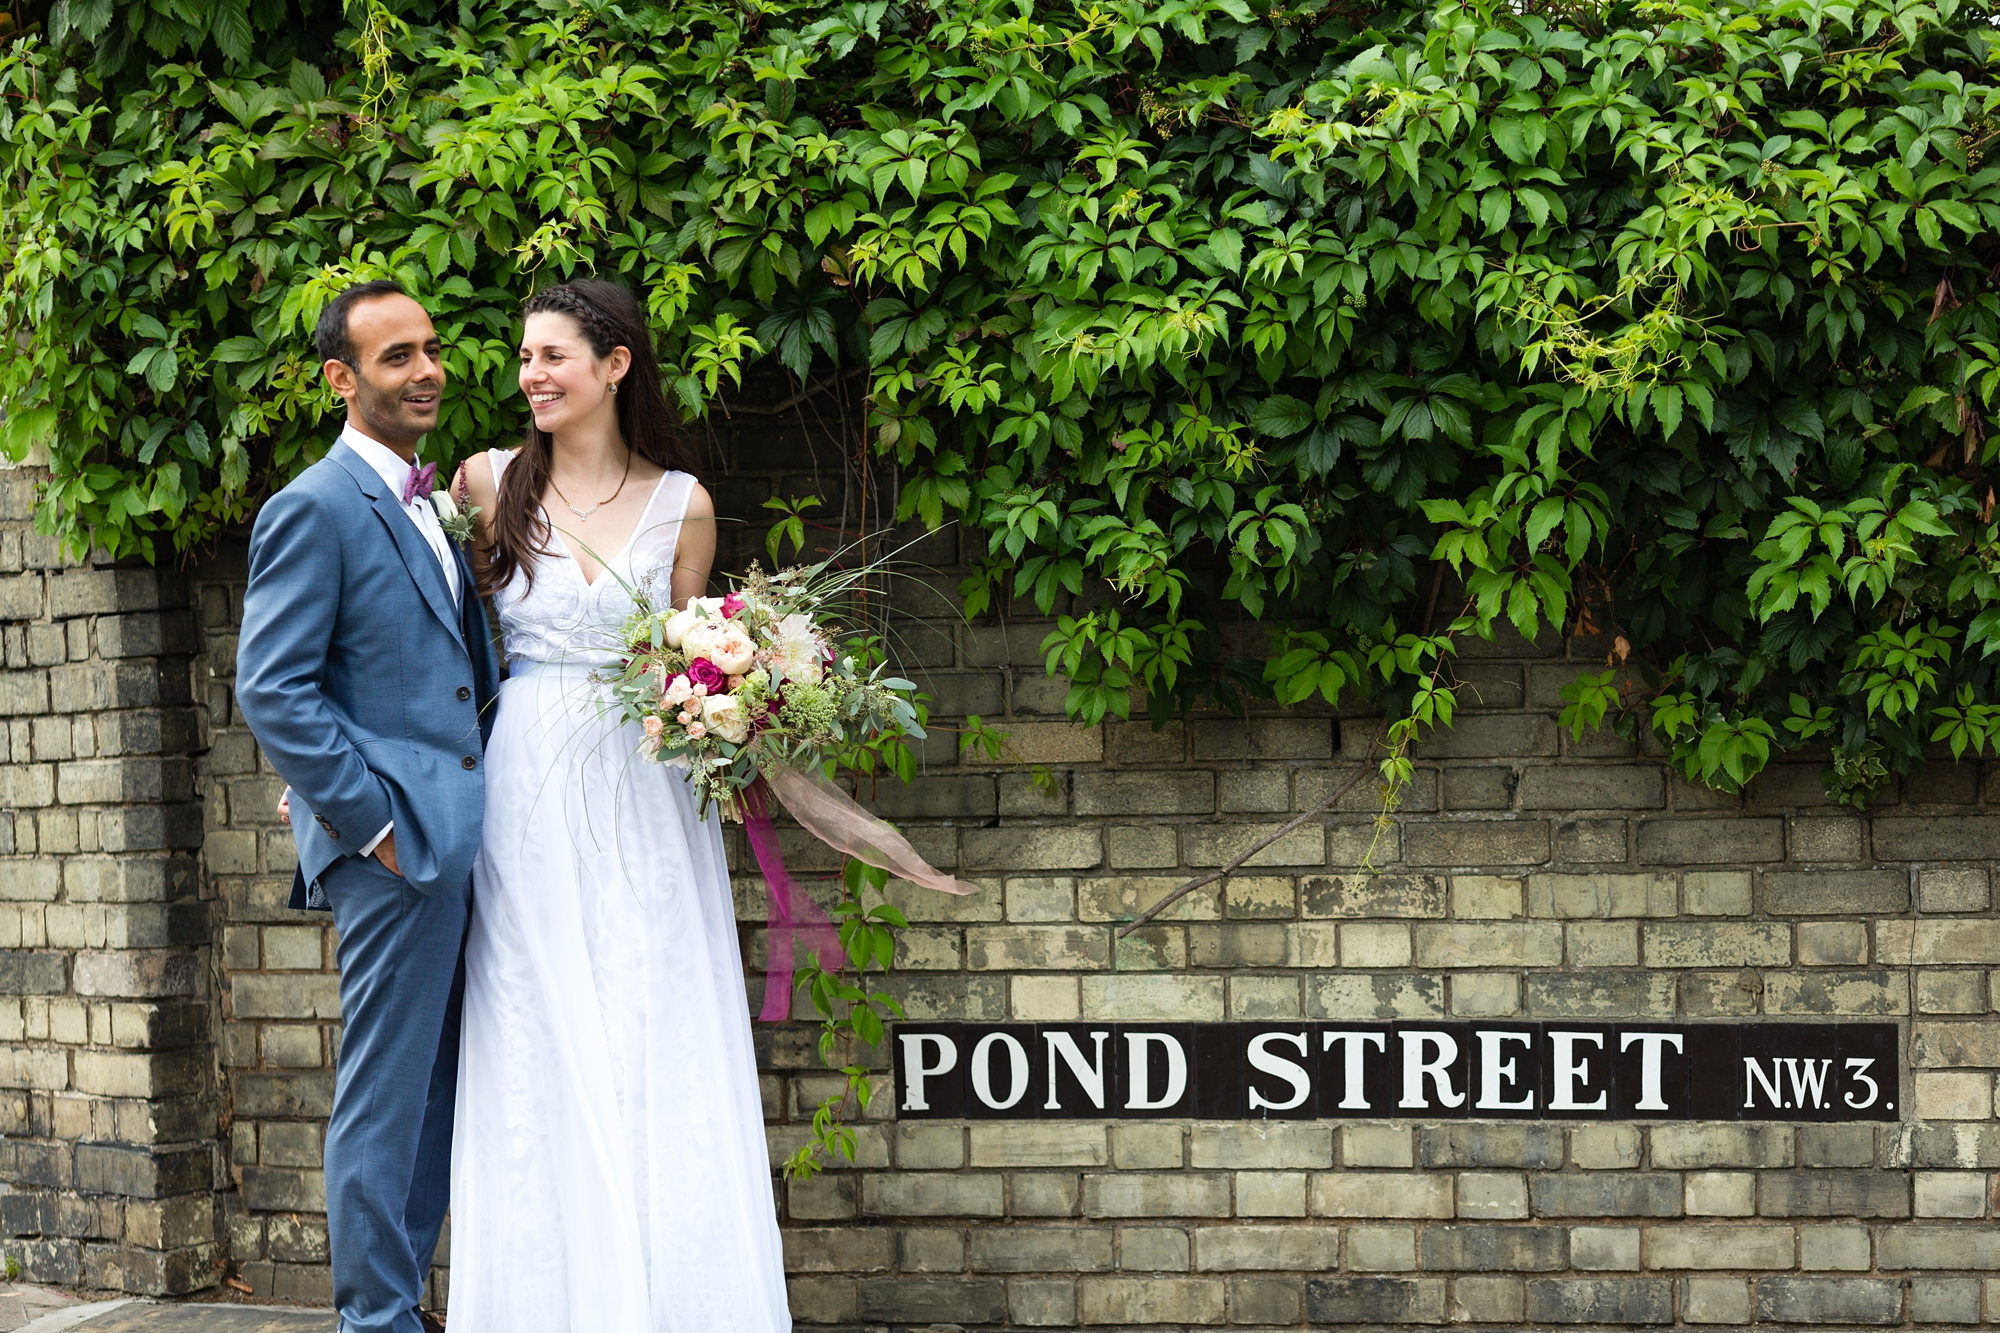 Bride and groom pose in front of pond street sign